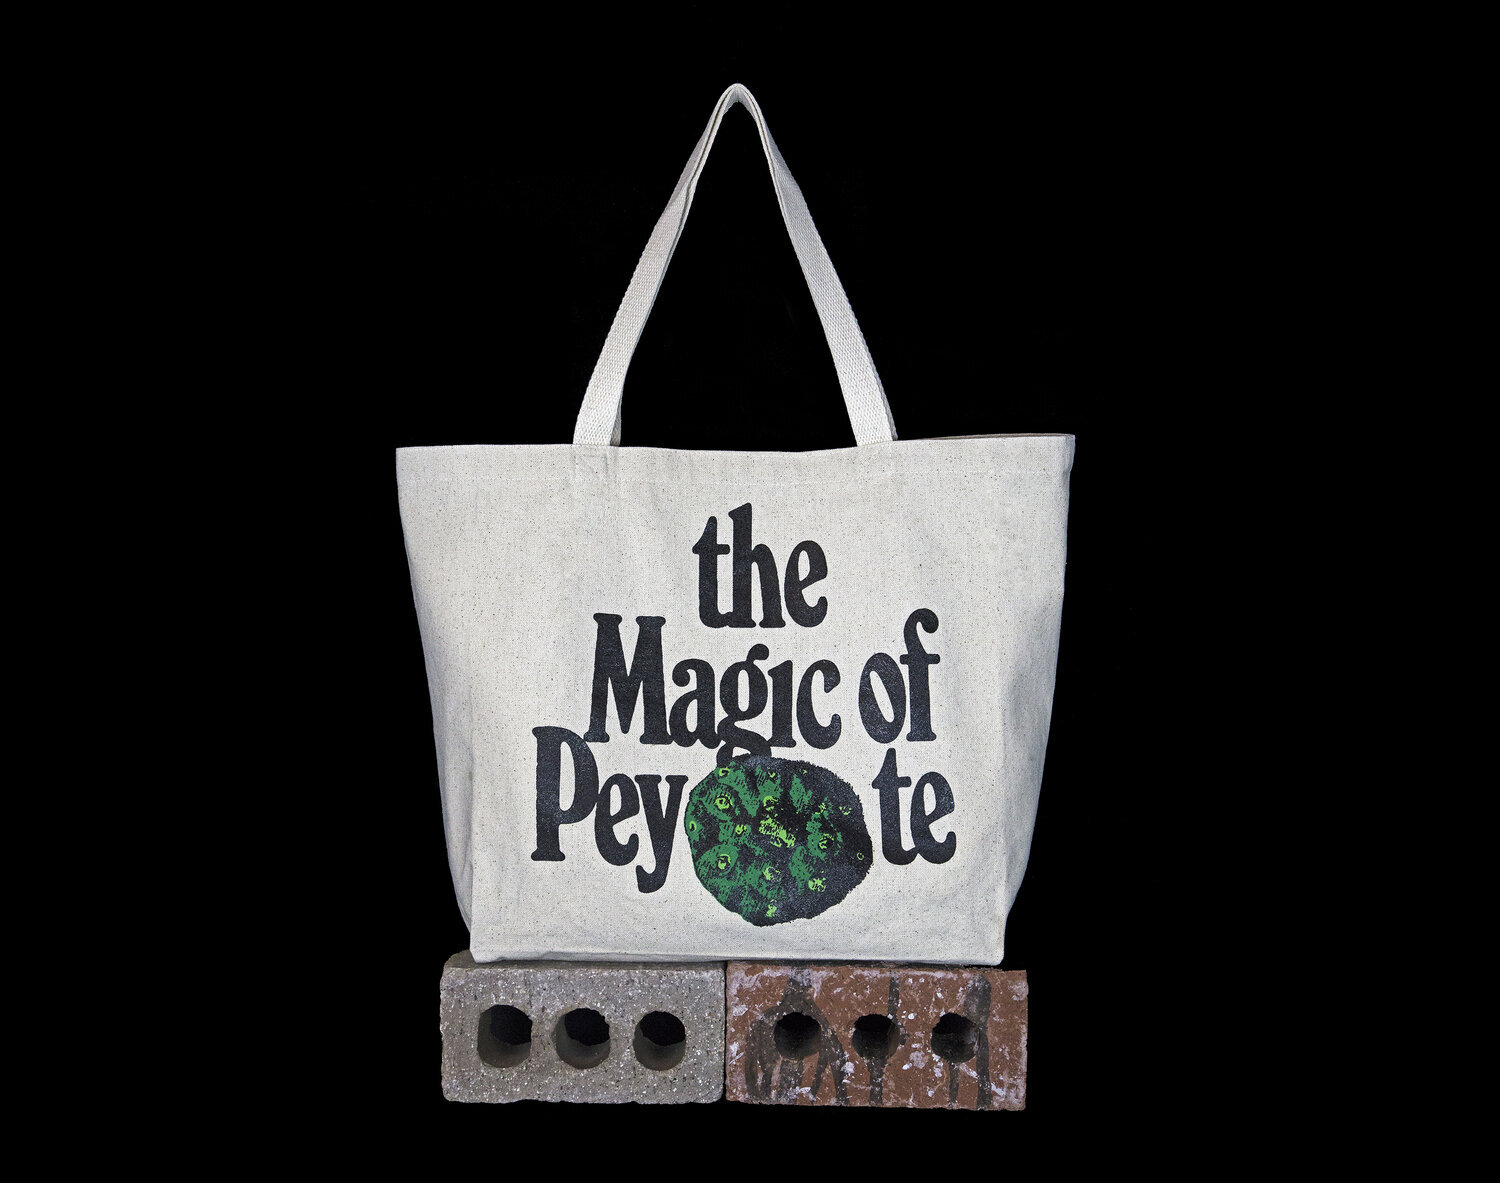 Peyote tote bag. Lophophora Williamsii